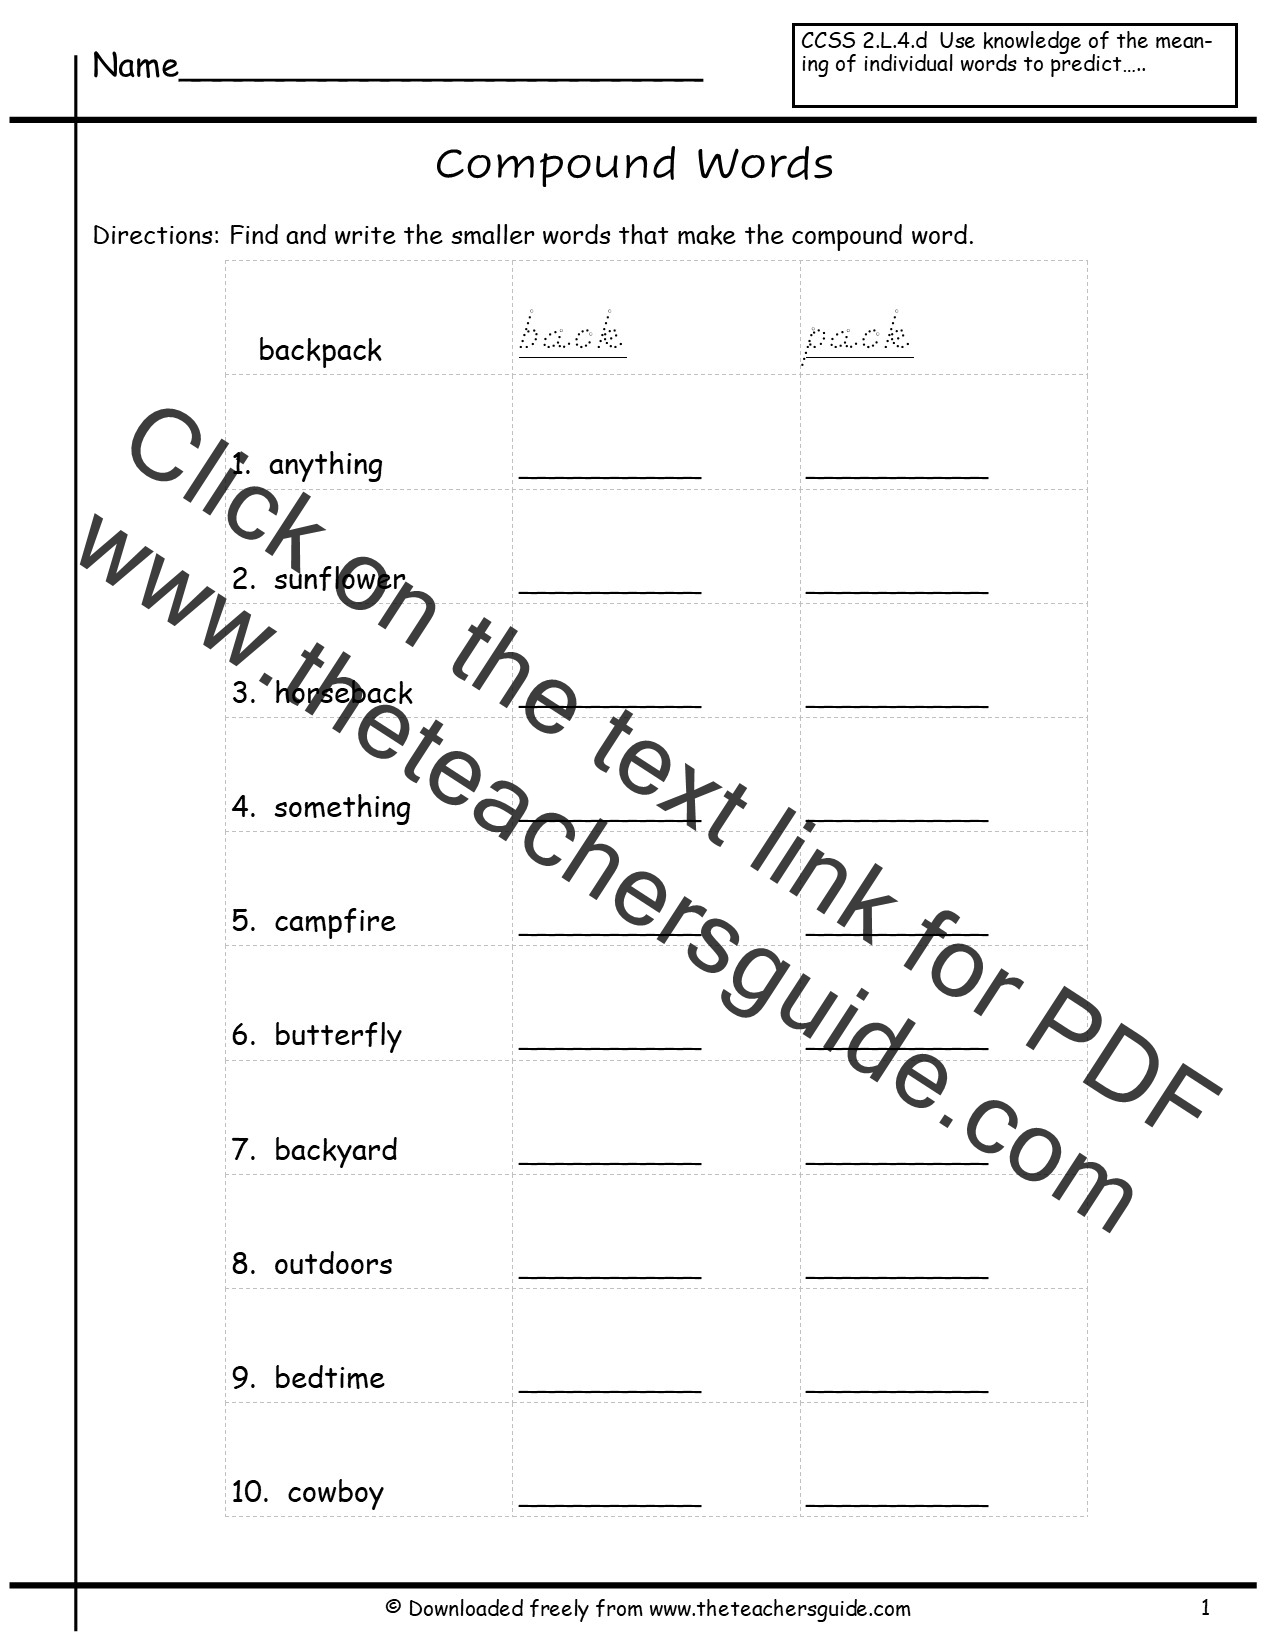 Worksheet Compound Words Worksheets 2nd Grade compound words worksheet 2nd grade delwfg com word activities for coffemix